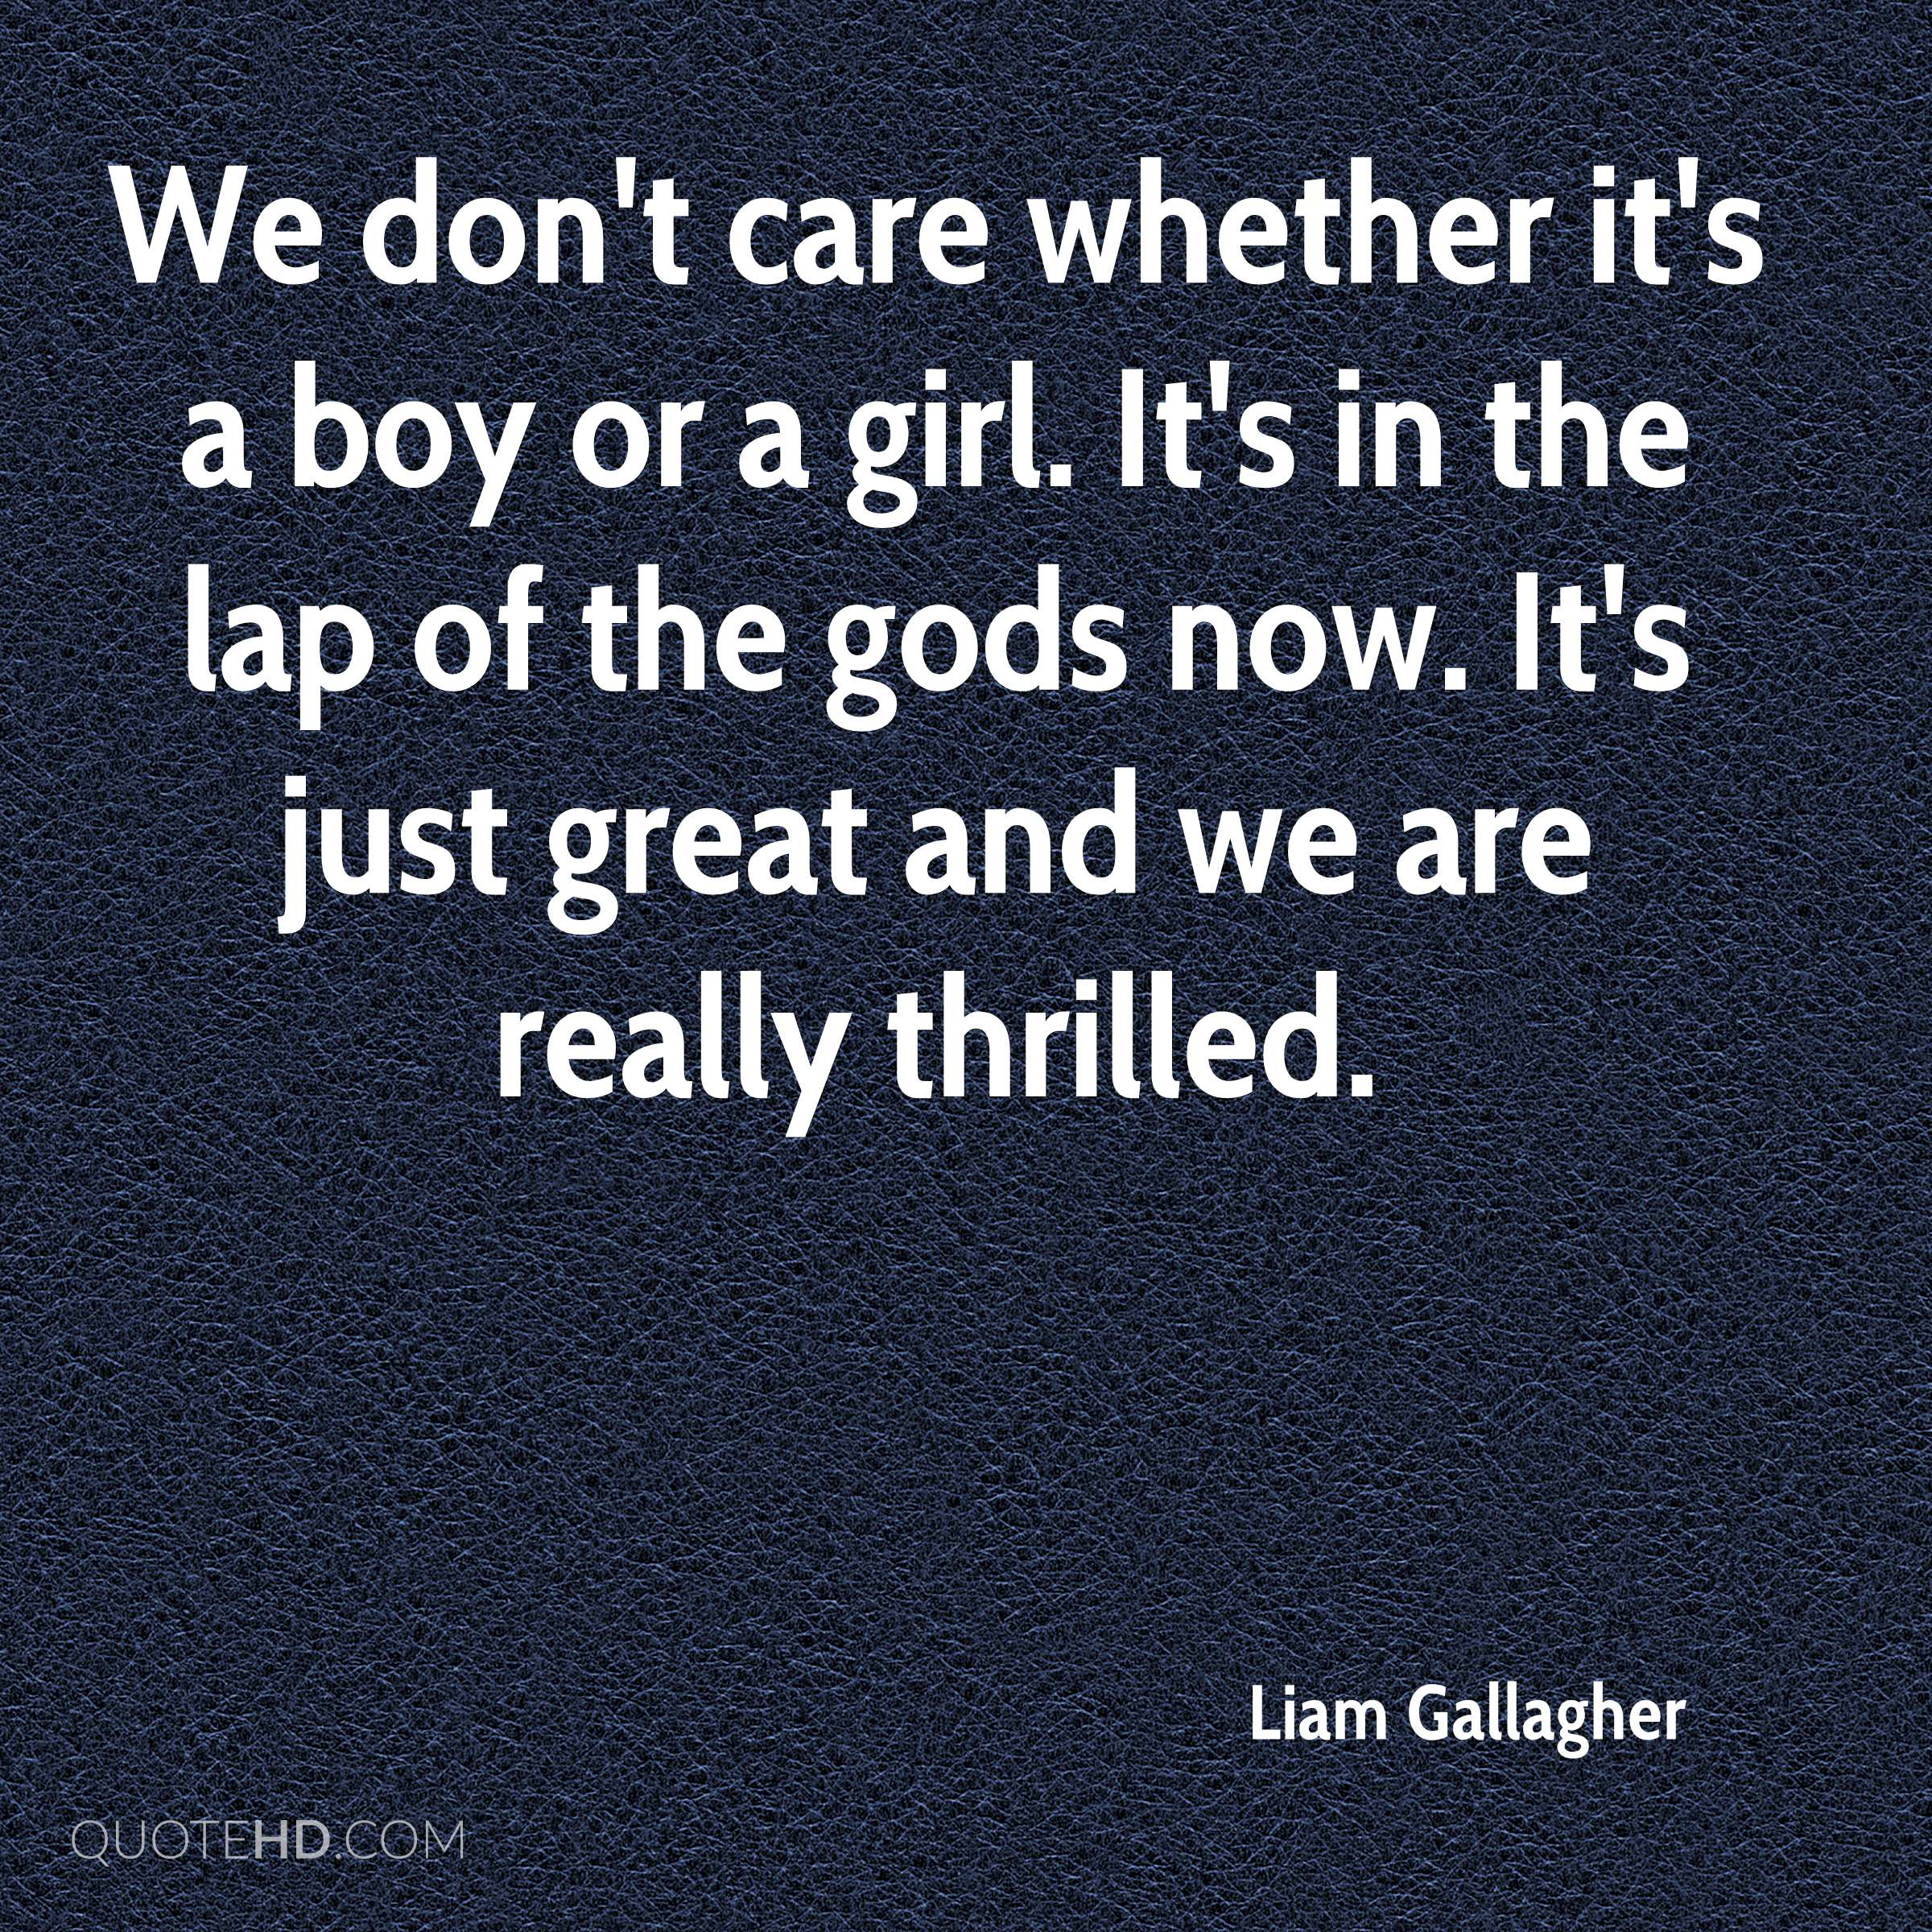 Is It A Boy Or Girl Quotes: Liam Gallagher Quotes